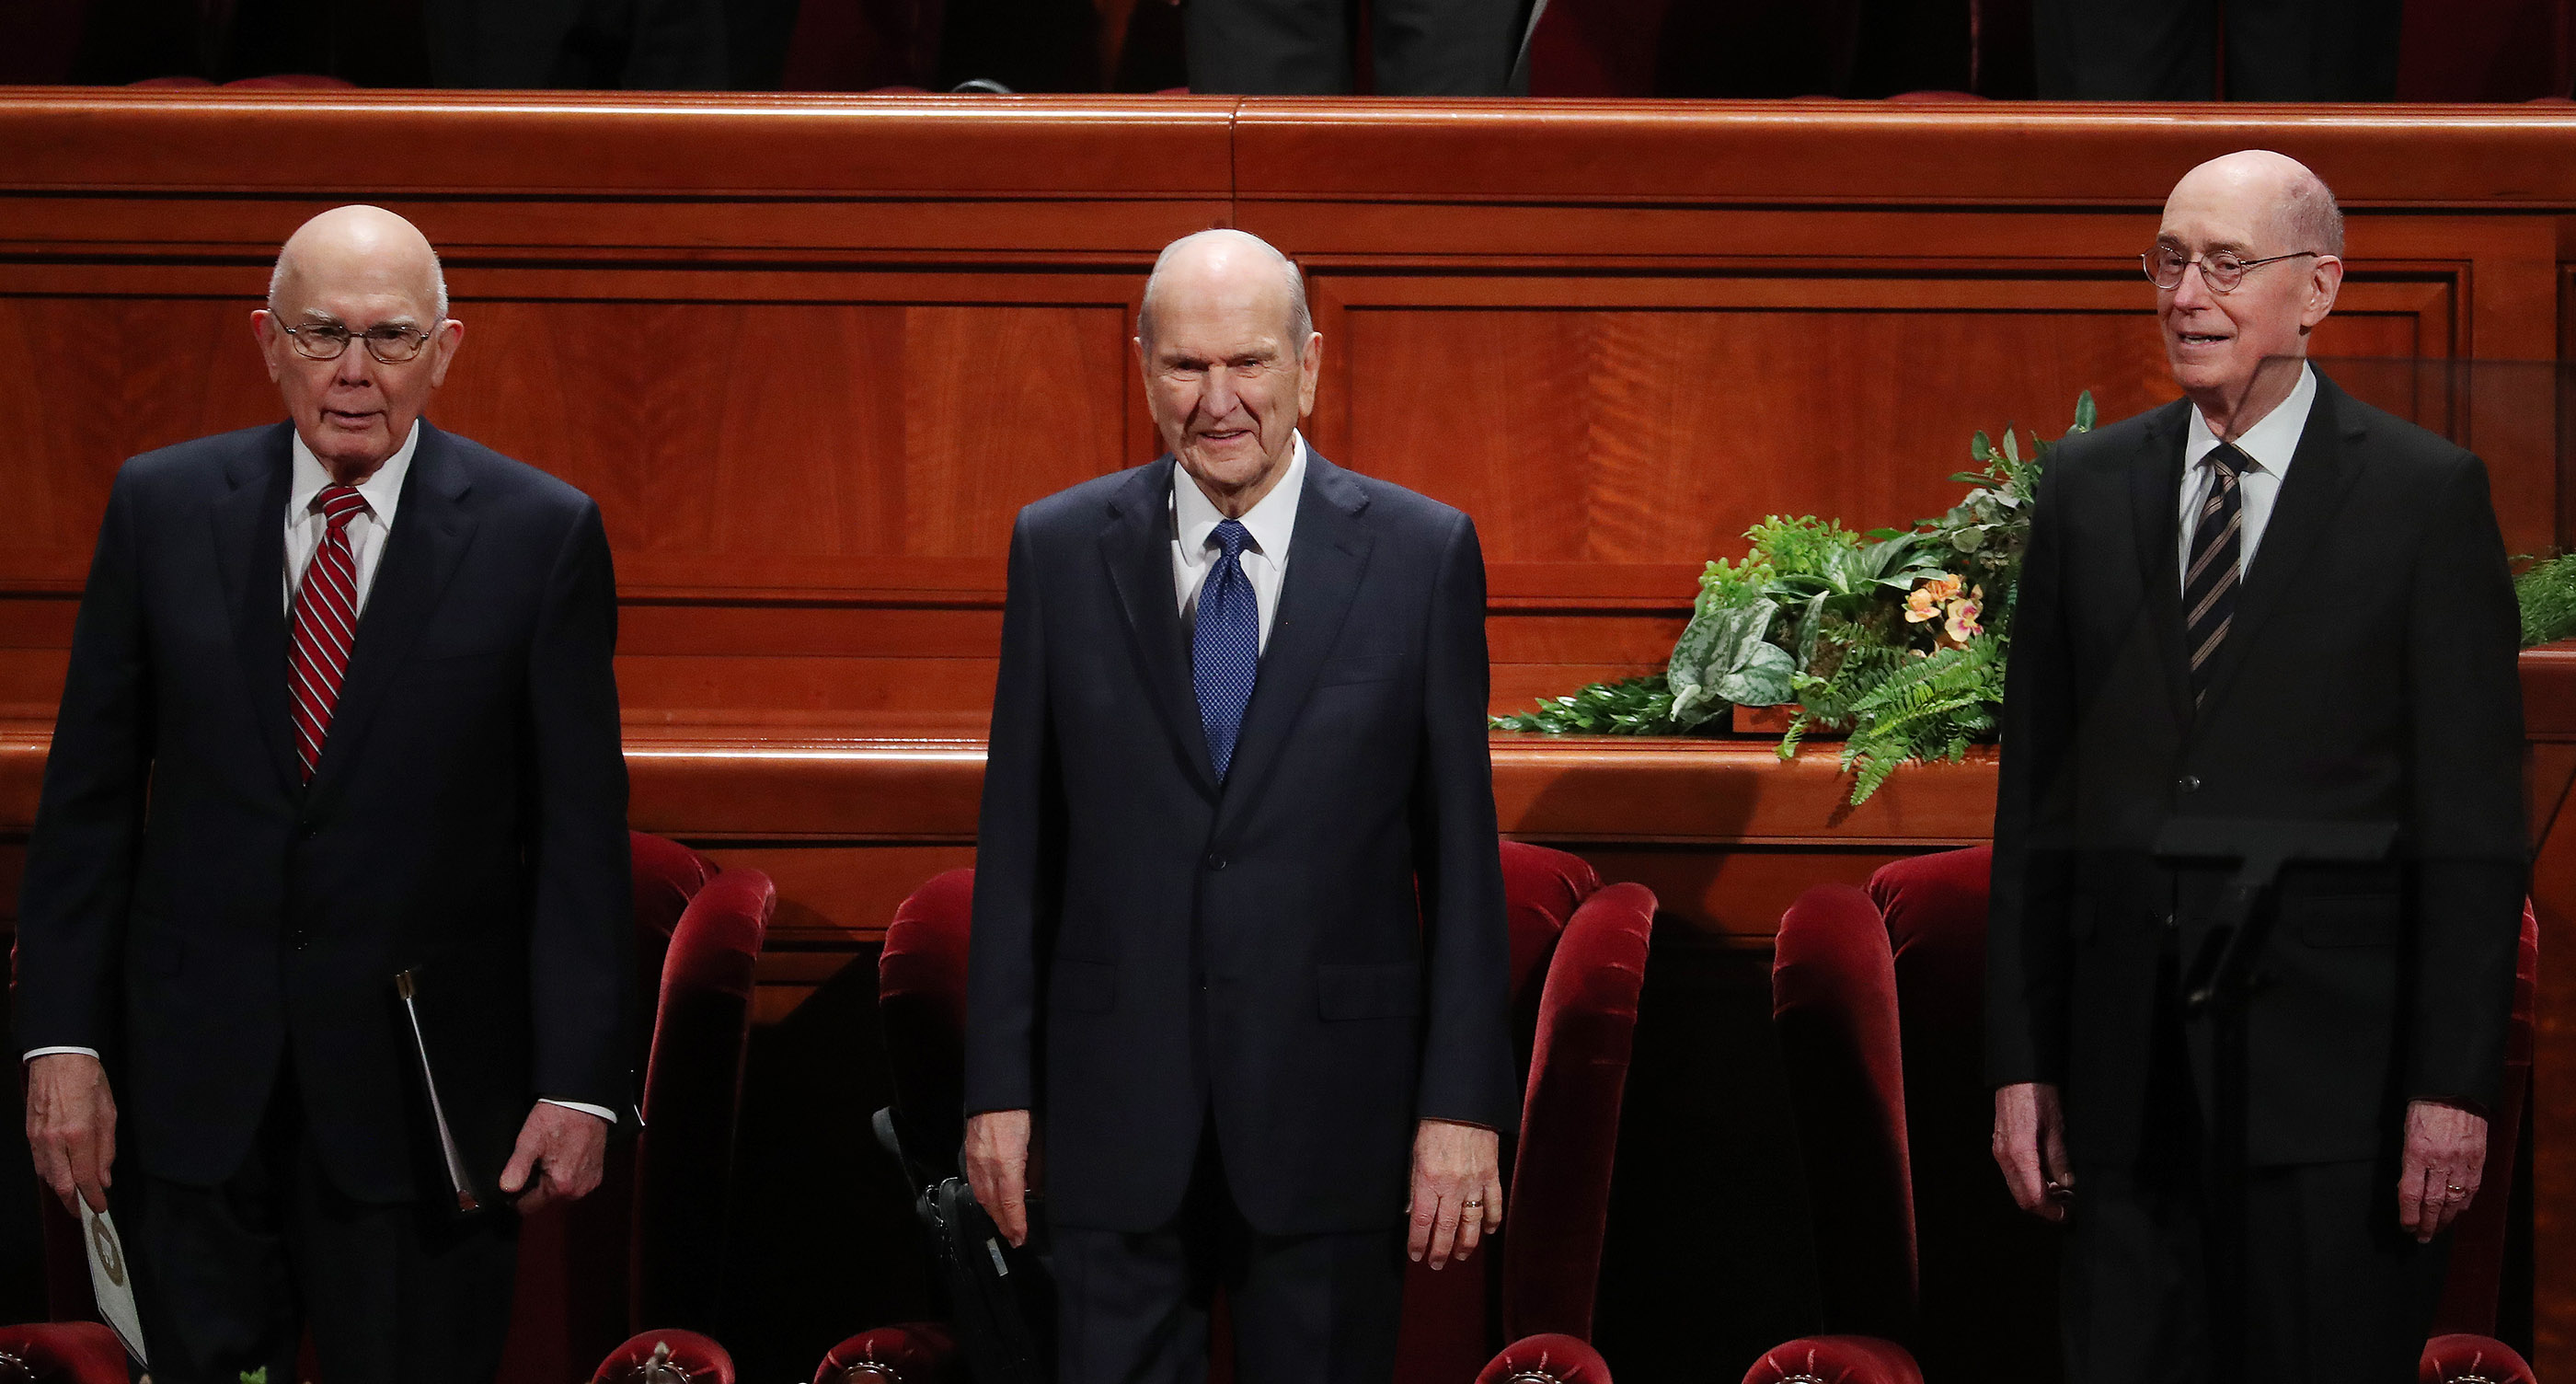 President Russell M. Nelson, center, and his counselors, President Dallin H. Oaks, first counselor in the First Presidency, left, and President Henry B. Eyring, second counselor in the First Presidency, right, enter the Conference Center prior to the Sunday morning session of the 189th Annual General Conference of The Church of Jesus Christ of Latter-day Saints in the Conference Center in Salt Lake City on Sunday, April 7, 2019.